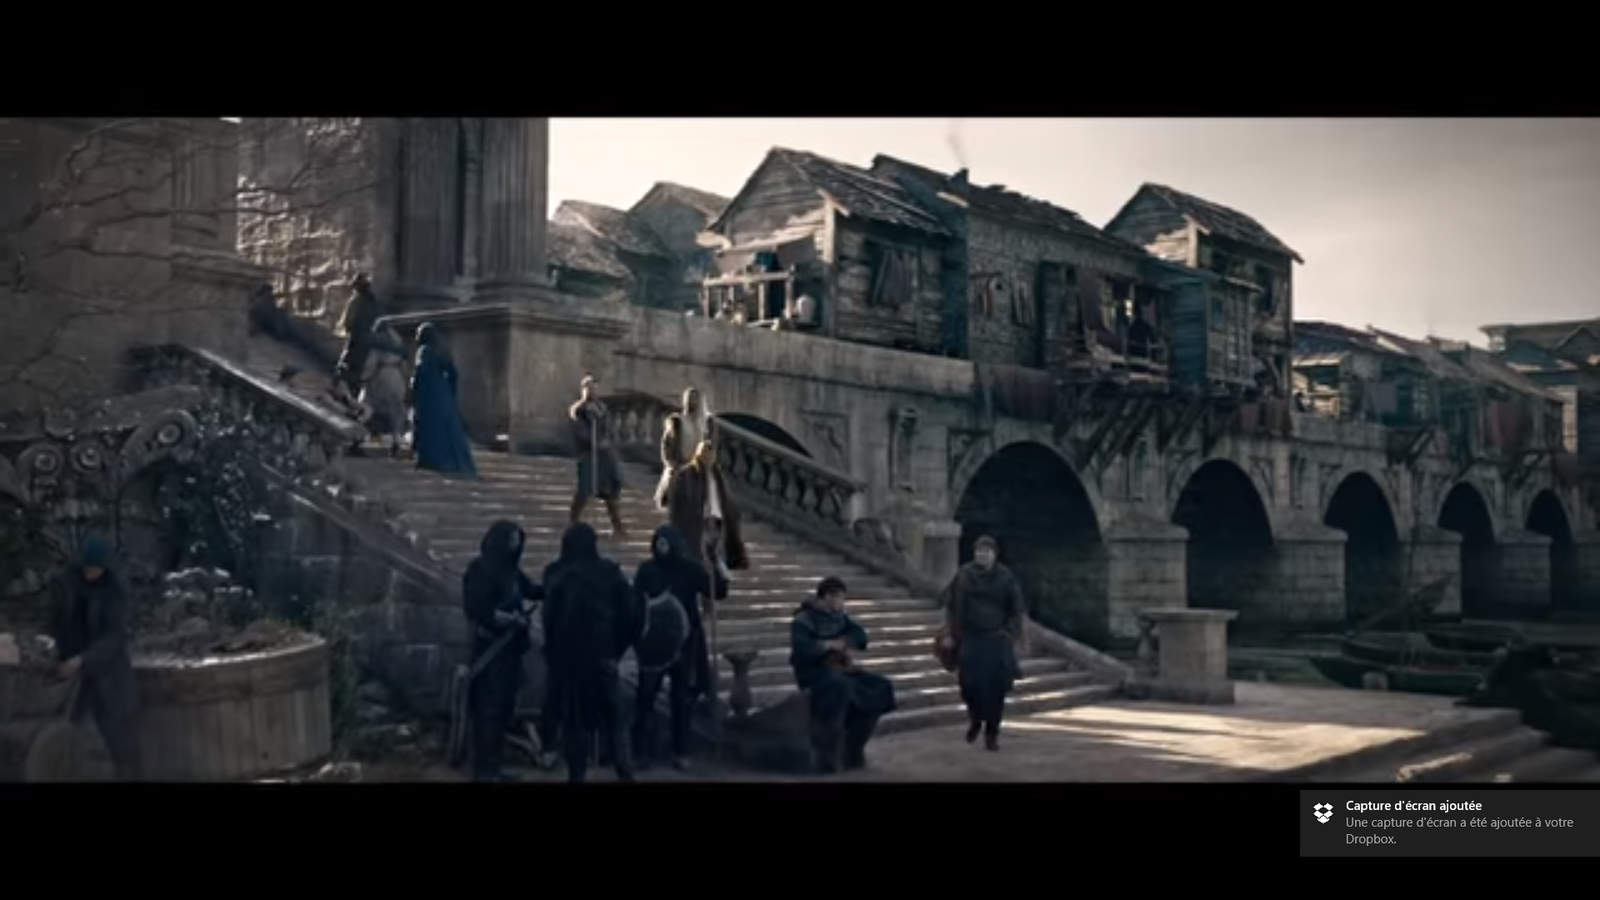 King Arthur de Guy Ritchie - Bande Annonce Officielle